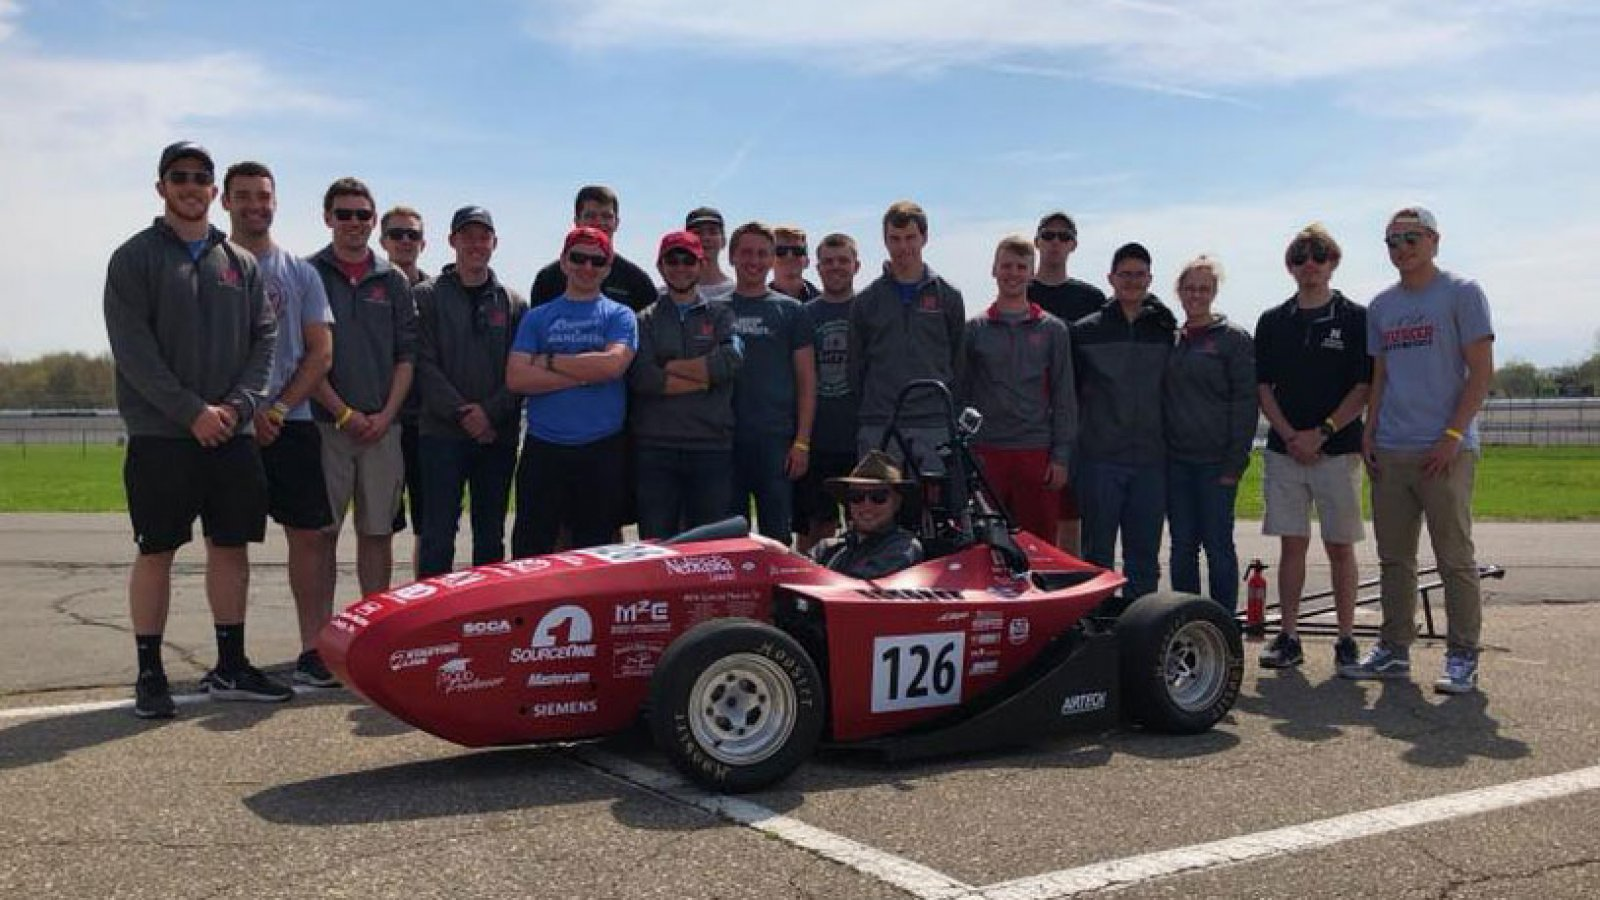 2018 Husker Motorsports Team and their vehicle